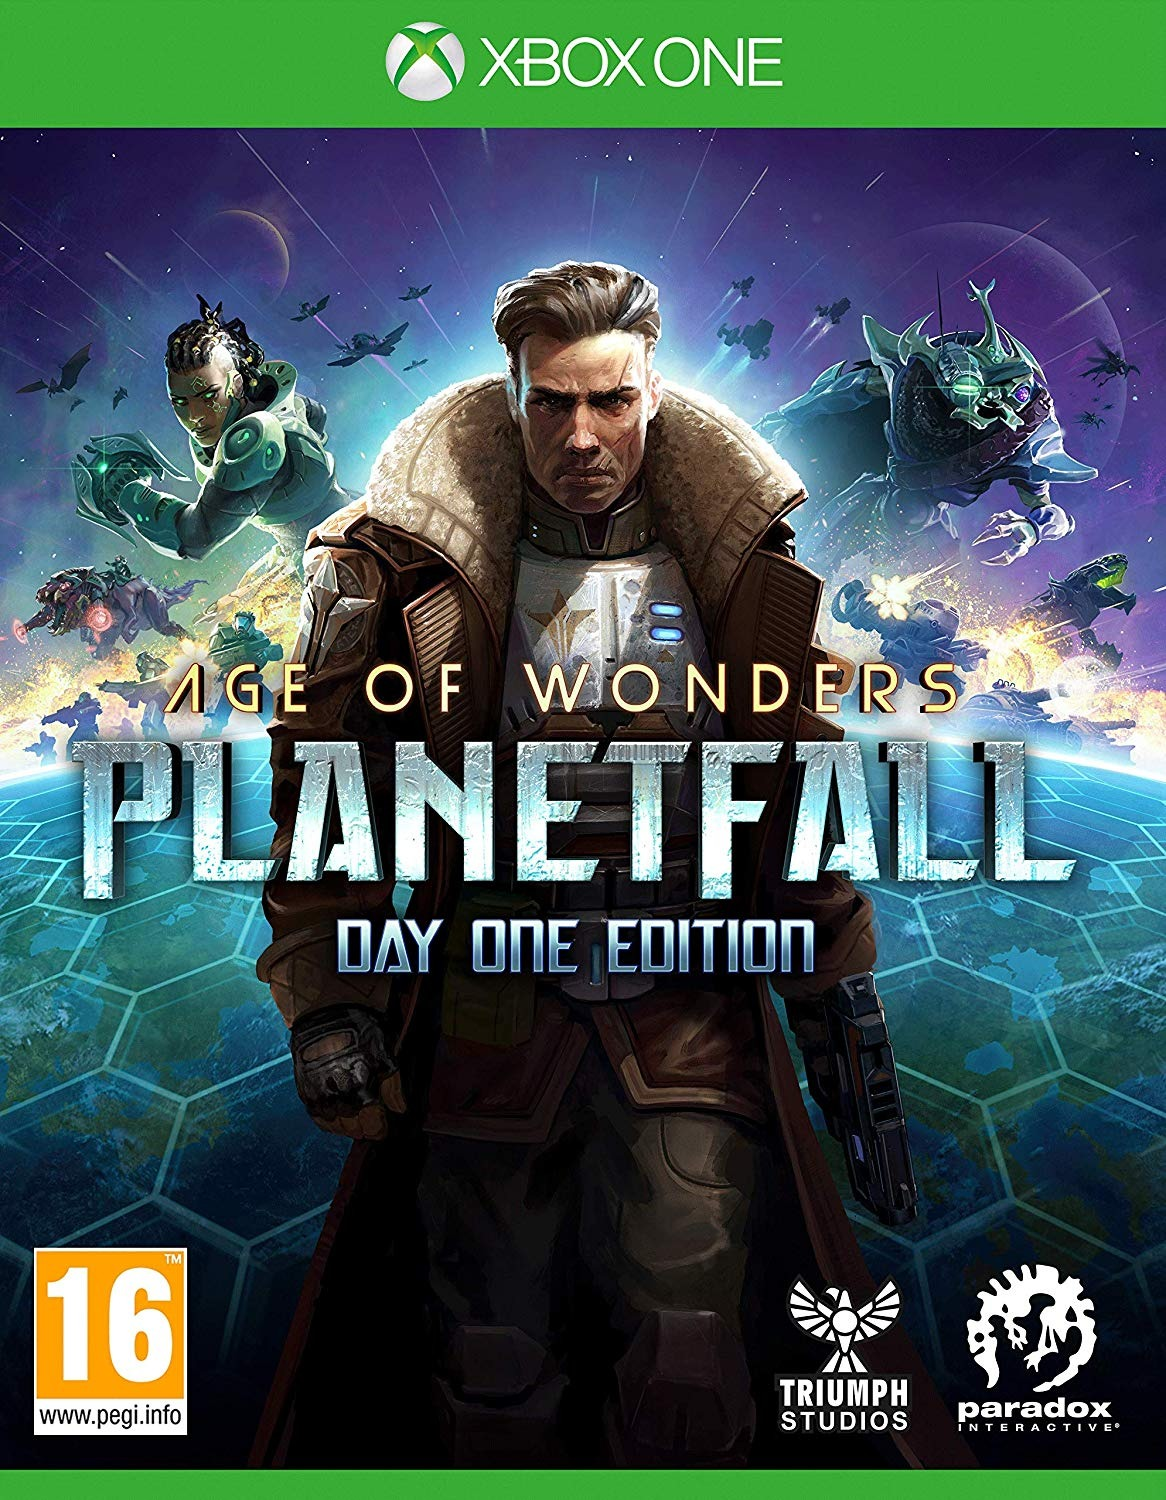 Age of Wonders: Planetfall - Day One Edition (XONE)